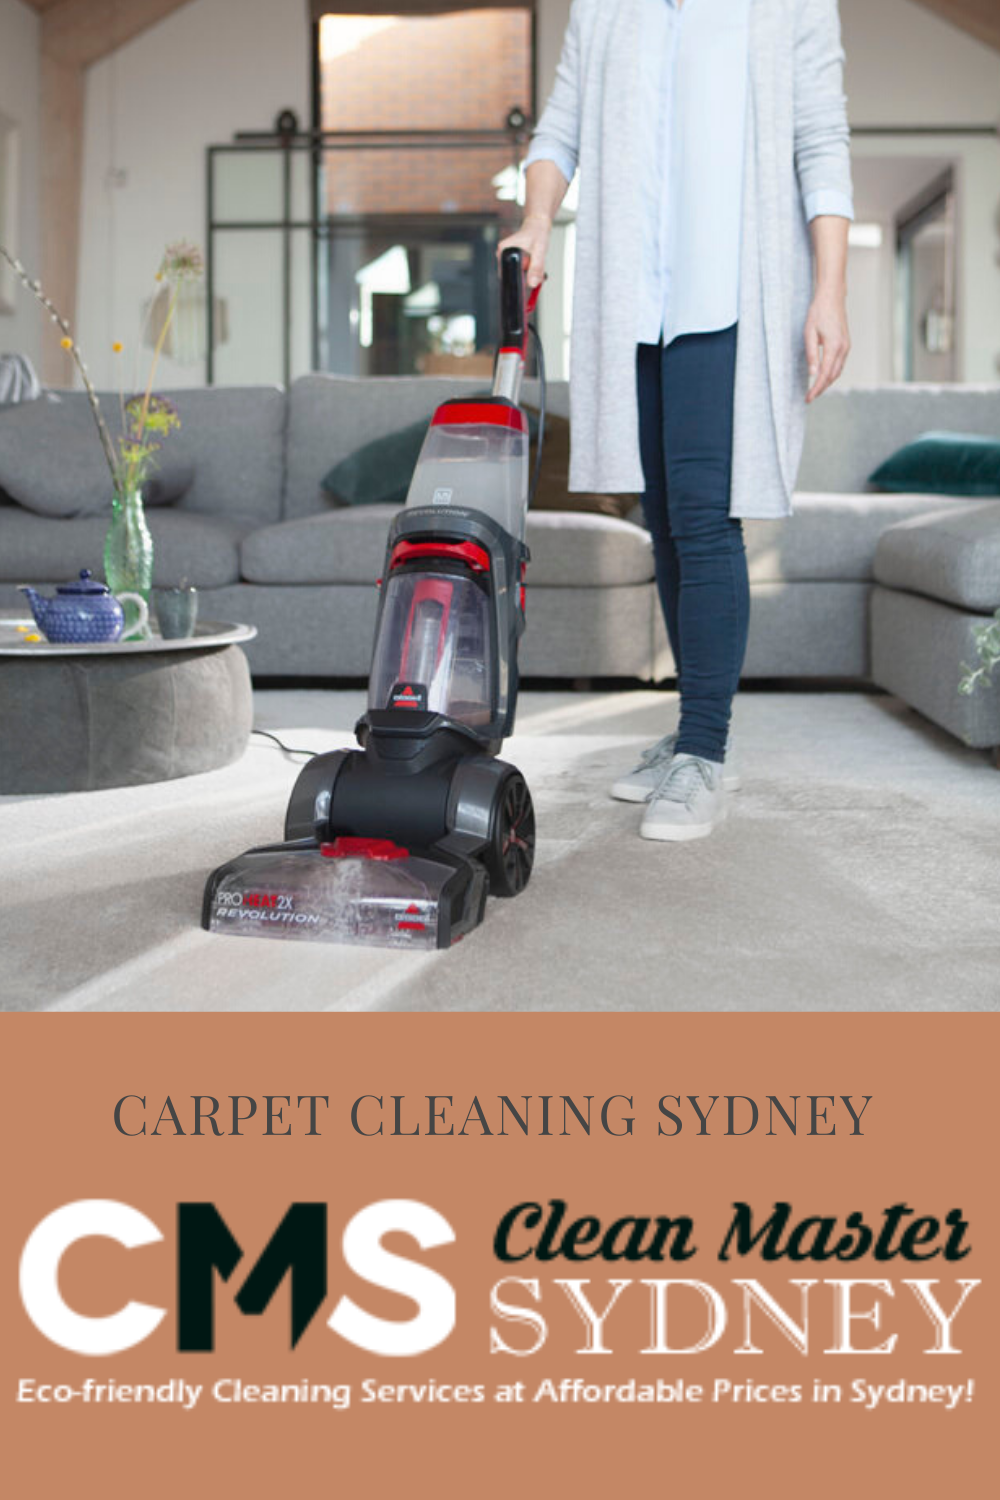 Sydney S Number 1 Carpet Cleaning Company In 2020 Cleaning Master Carpet Cleaning Company Carpet Cleaning Solution